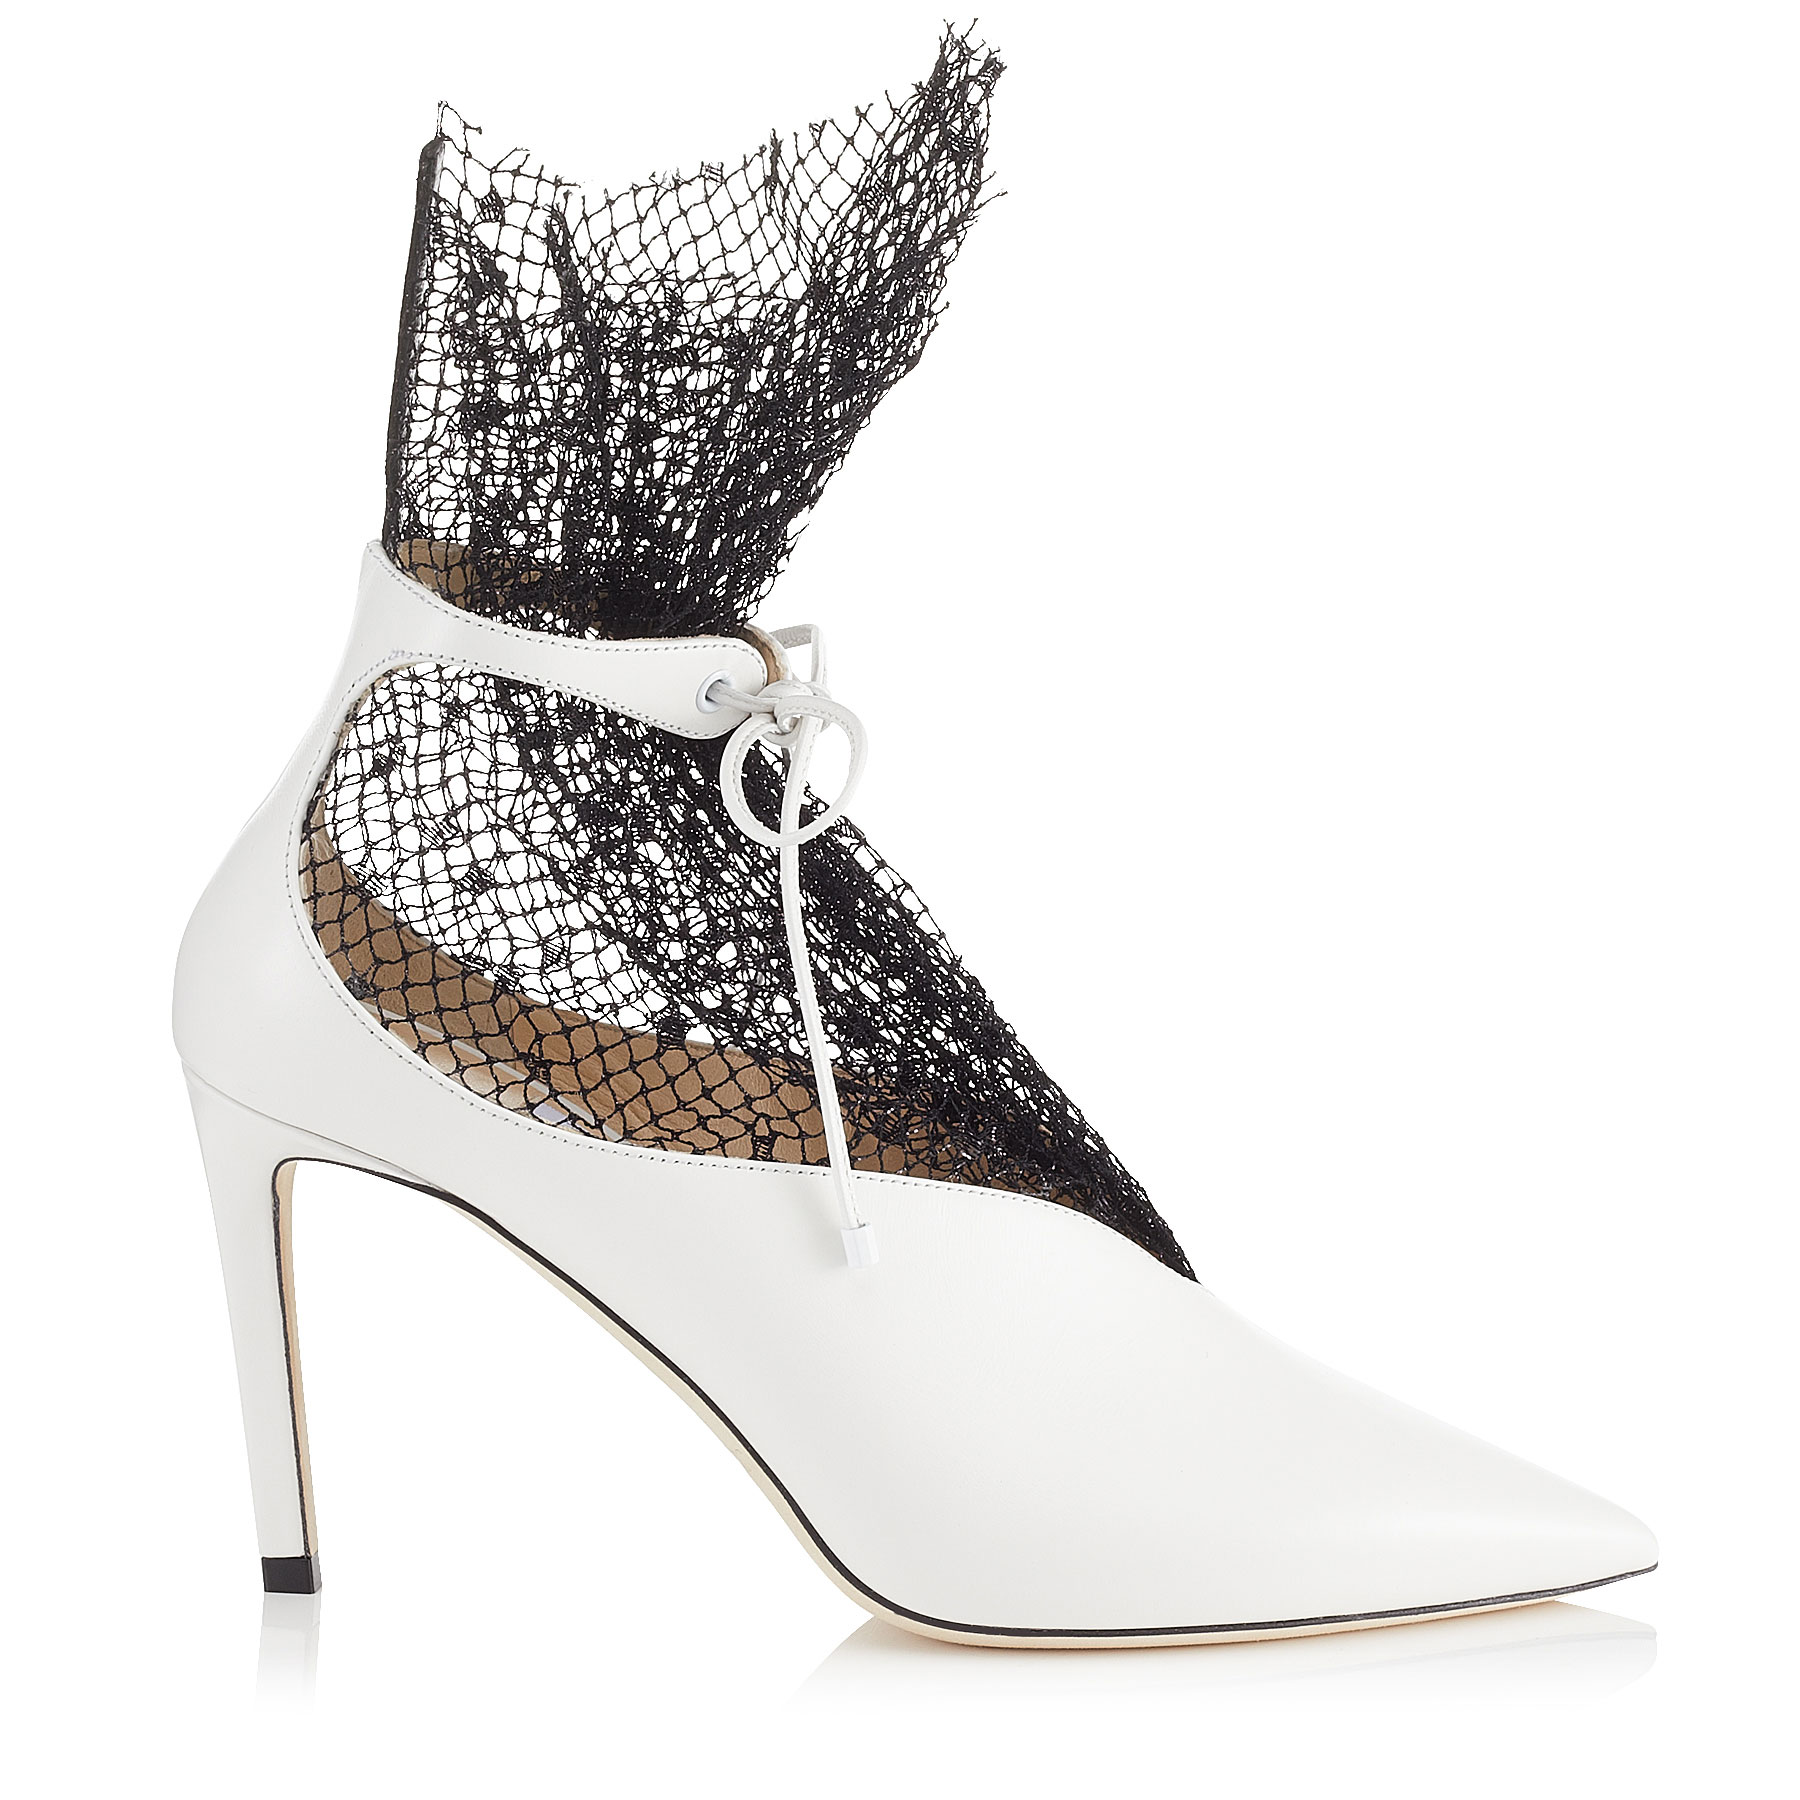 LEANNE 85 White Calf Leather Booties with Polka Dot Net by Jimmy Choo